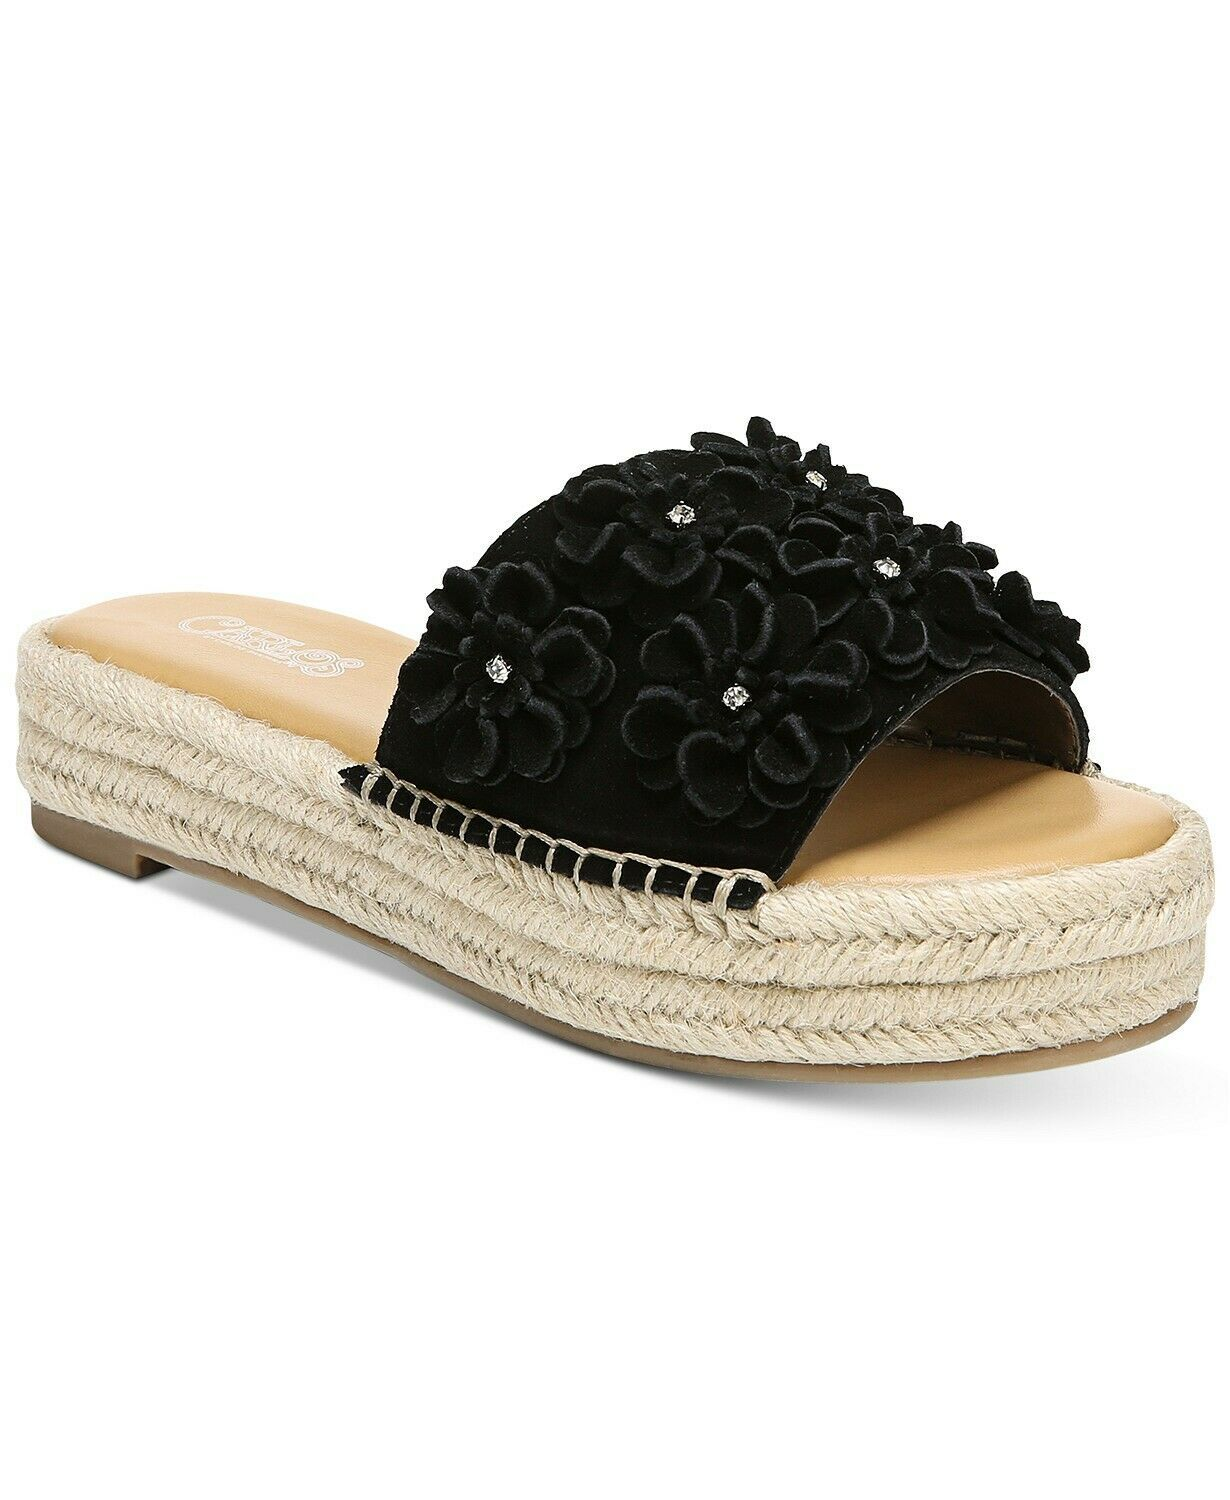 Carlos by Carlos Santana Chandler Sandals Black, Size 5.5 M